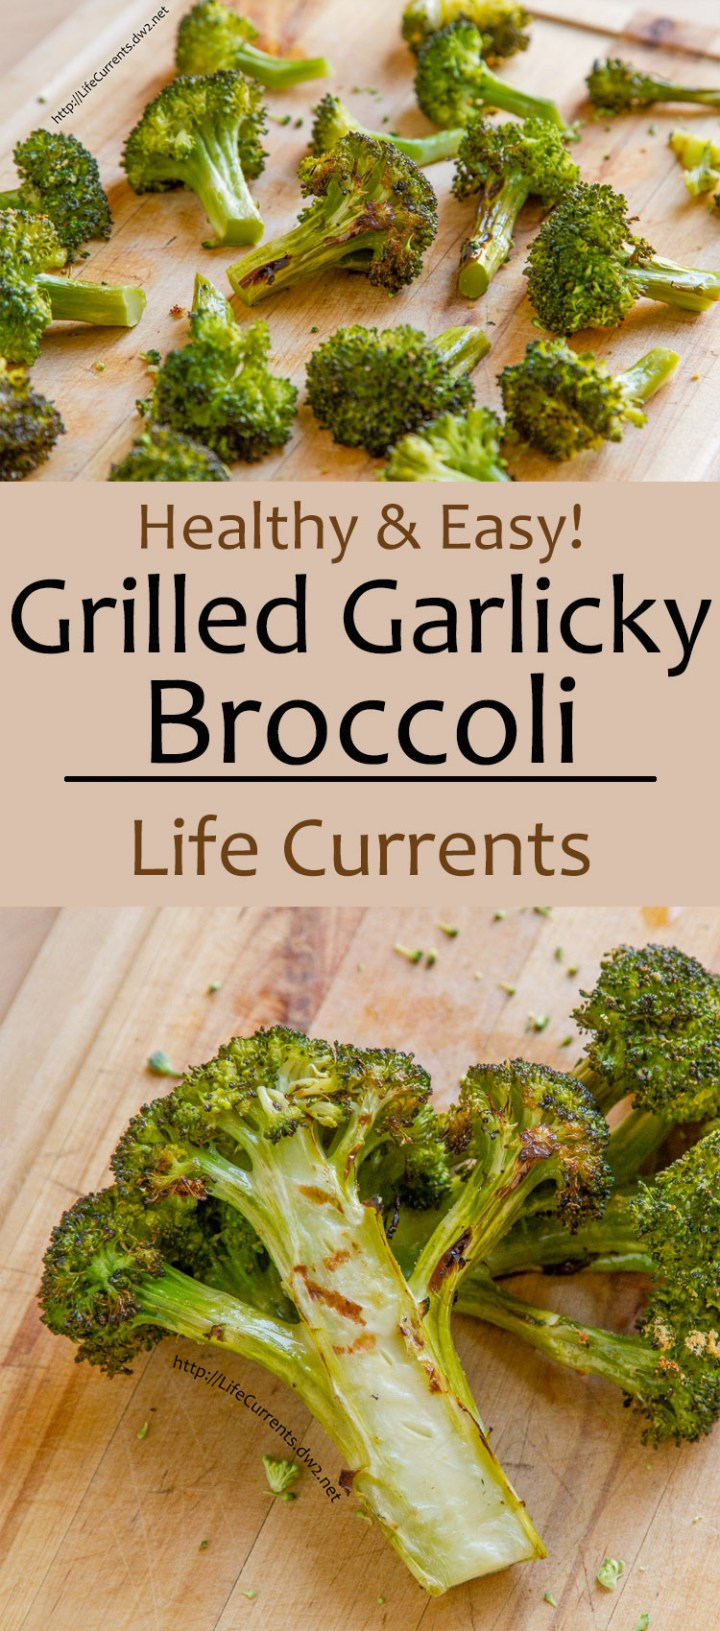 Grilled Garlicky Broccoli -- We love to grill the whole meal outside. All you need for a fabulous dinner is a nice steak, fish, or tofu steak, this Grilled Garlicky Broccoli, and some baked potatoes and you've got a family friendly super easy dinner!